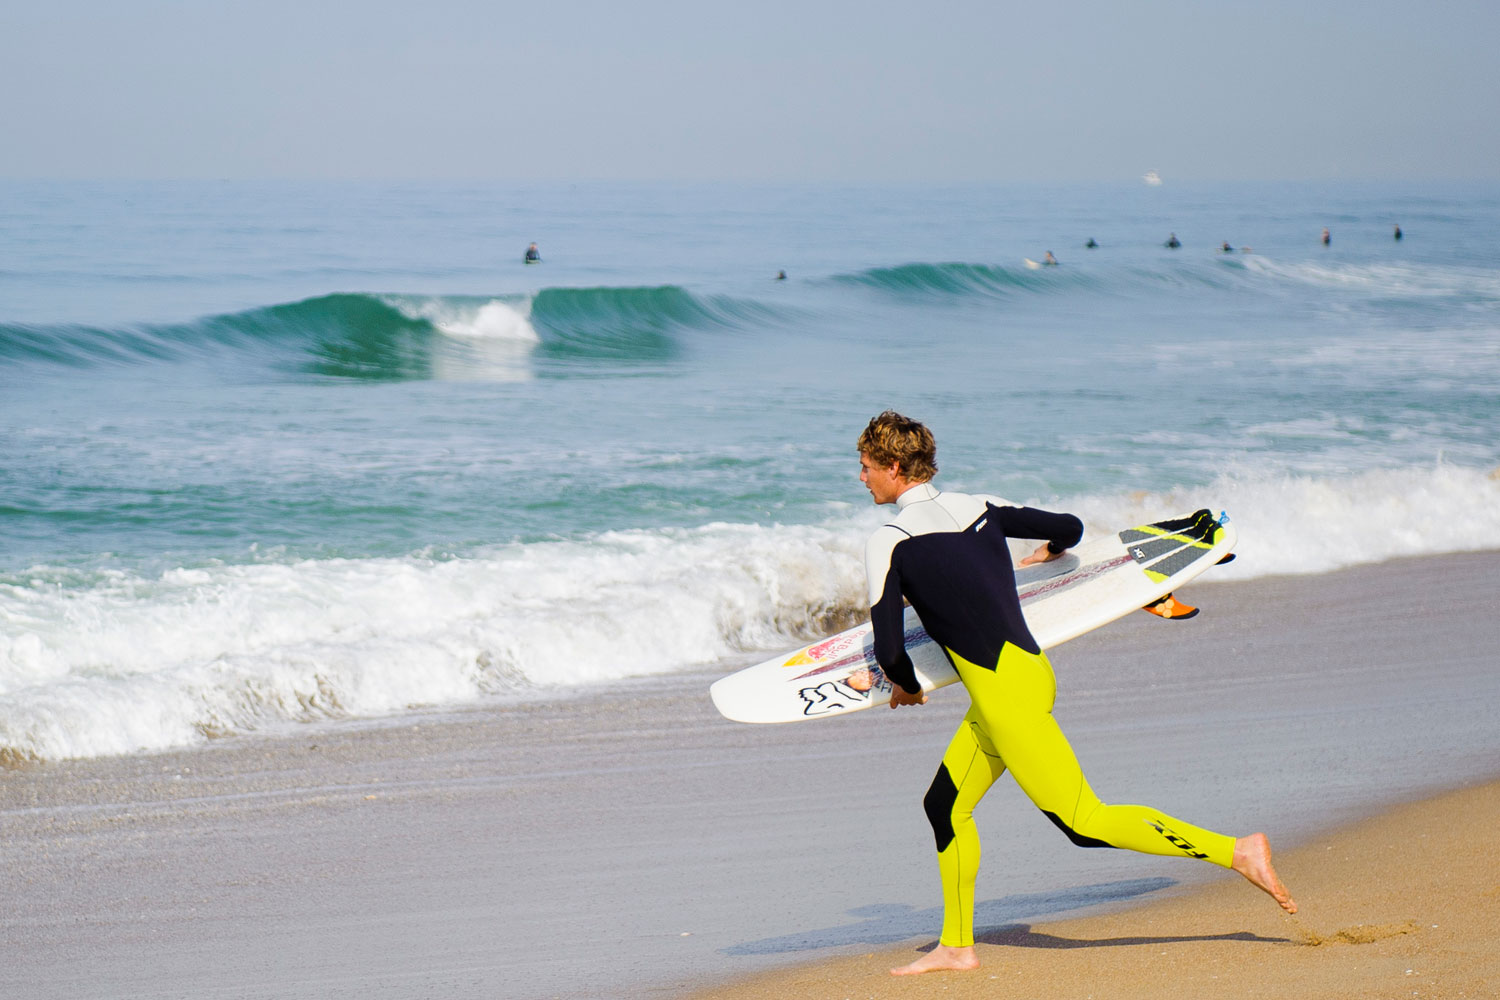 Ian Walsh running out to surf the second half of the day in the ocean.